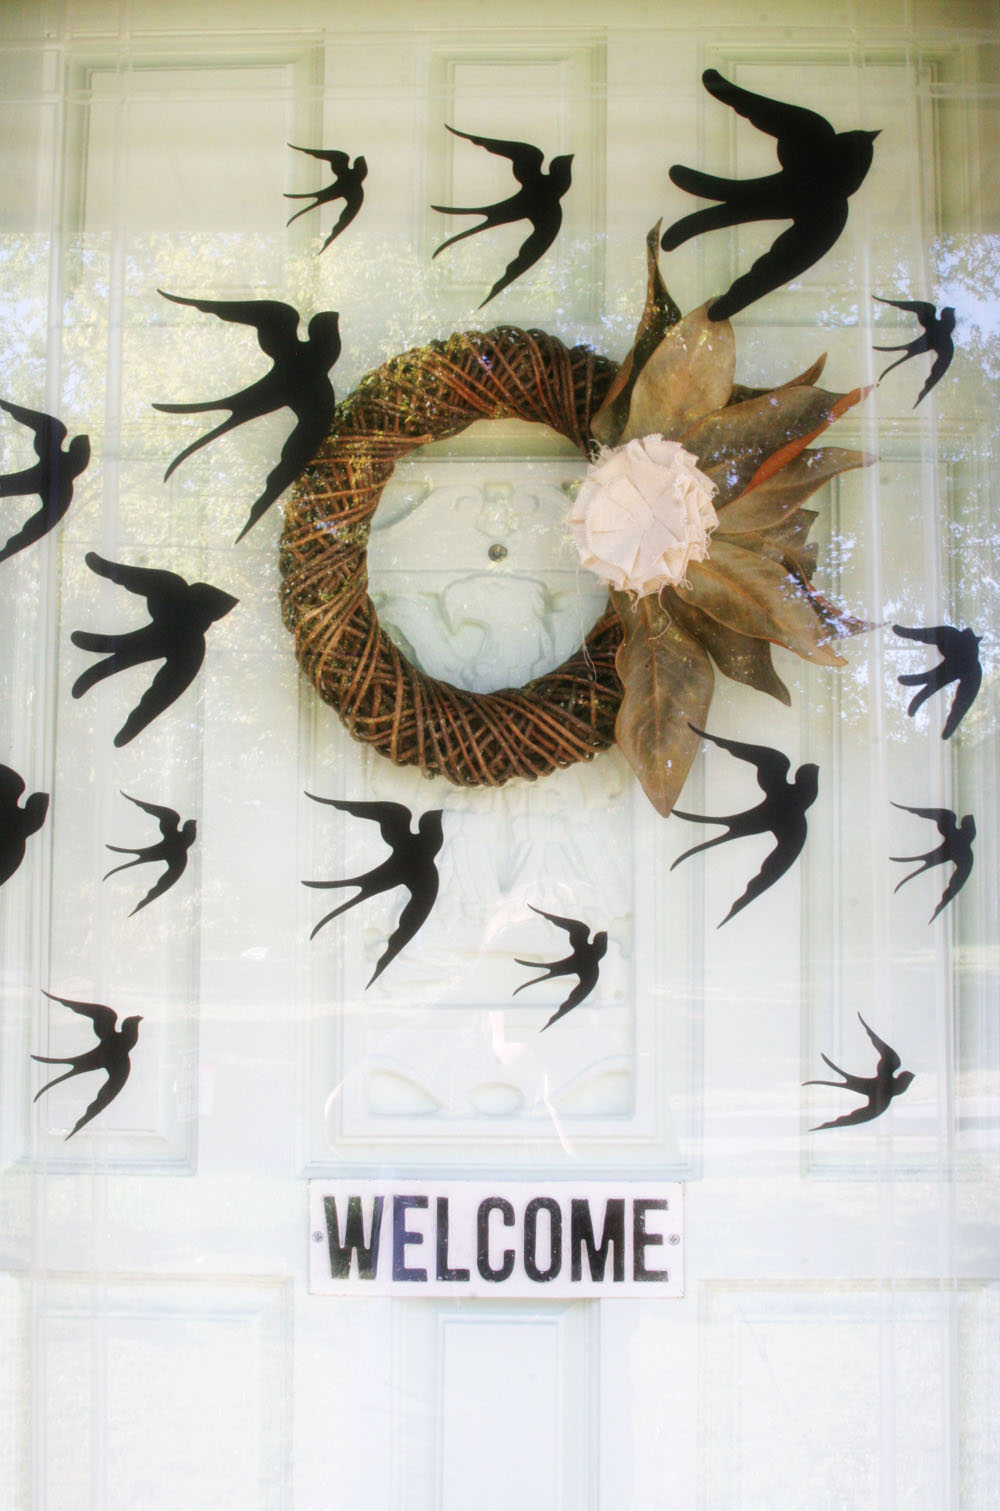 Fall wreath and flying bird adhesives used as DIY outdoor Halloween decorations